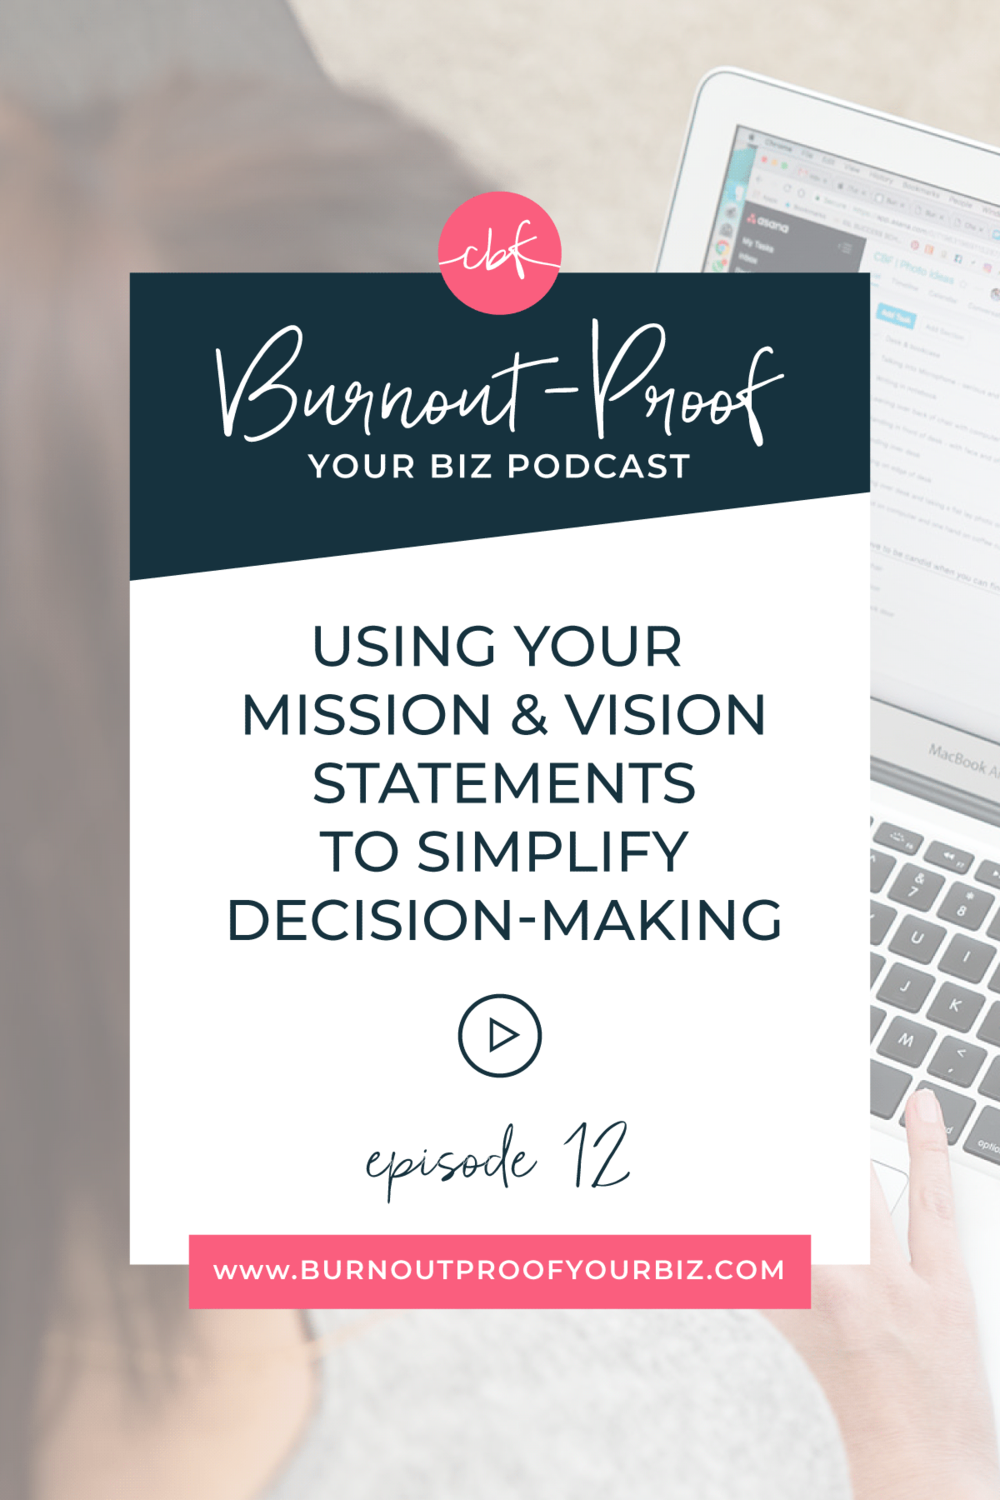 Burnout-Proof Your Biz Podcast with Chelsea B Foster | Episode 012 - Using Your Mission & Vision Statements to Simplify Decision-Making | Learn how to run your biz and live your dream life on your own terms without the fear of burnout.